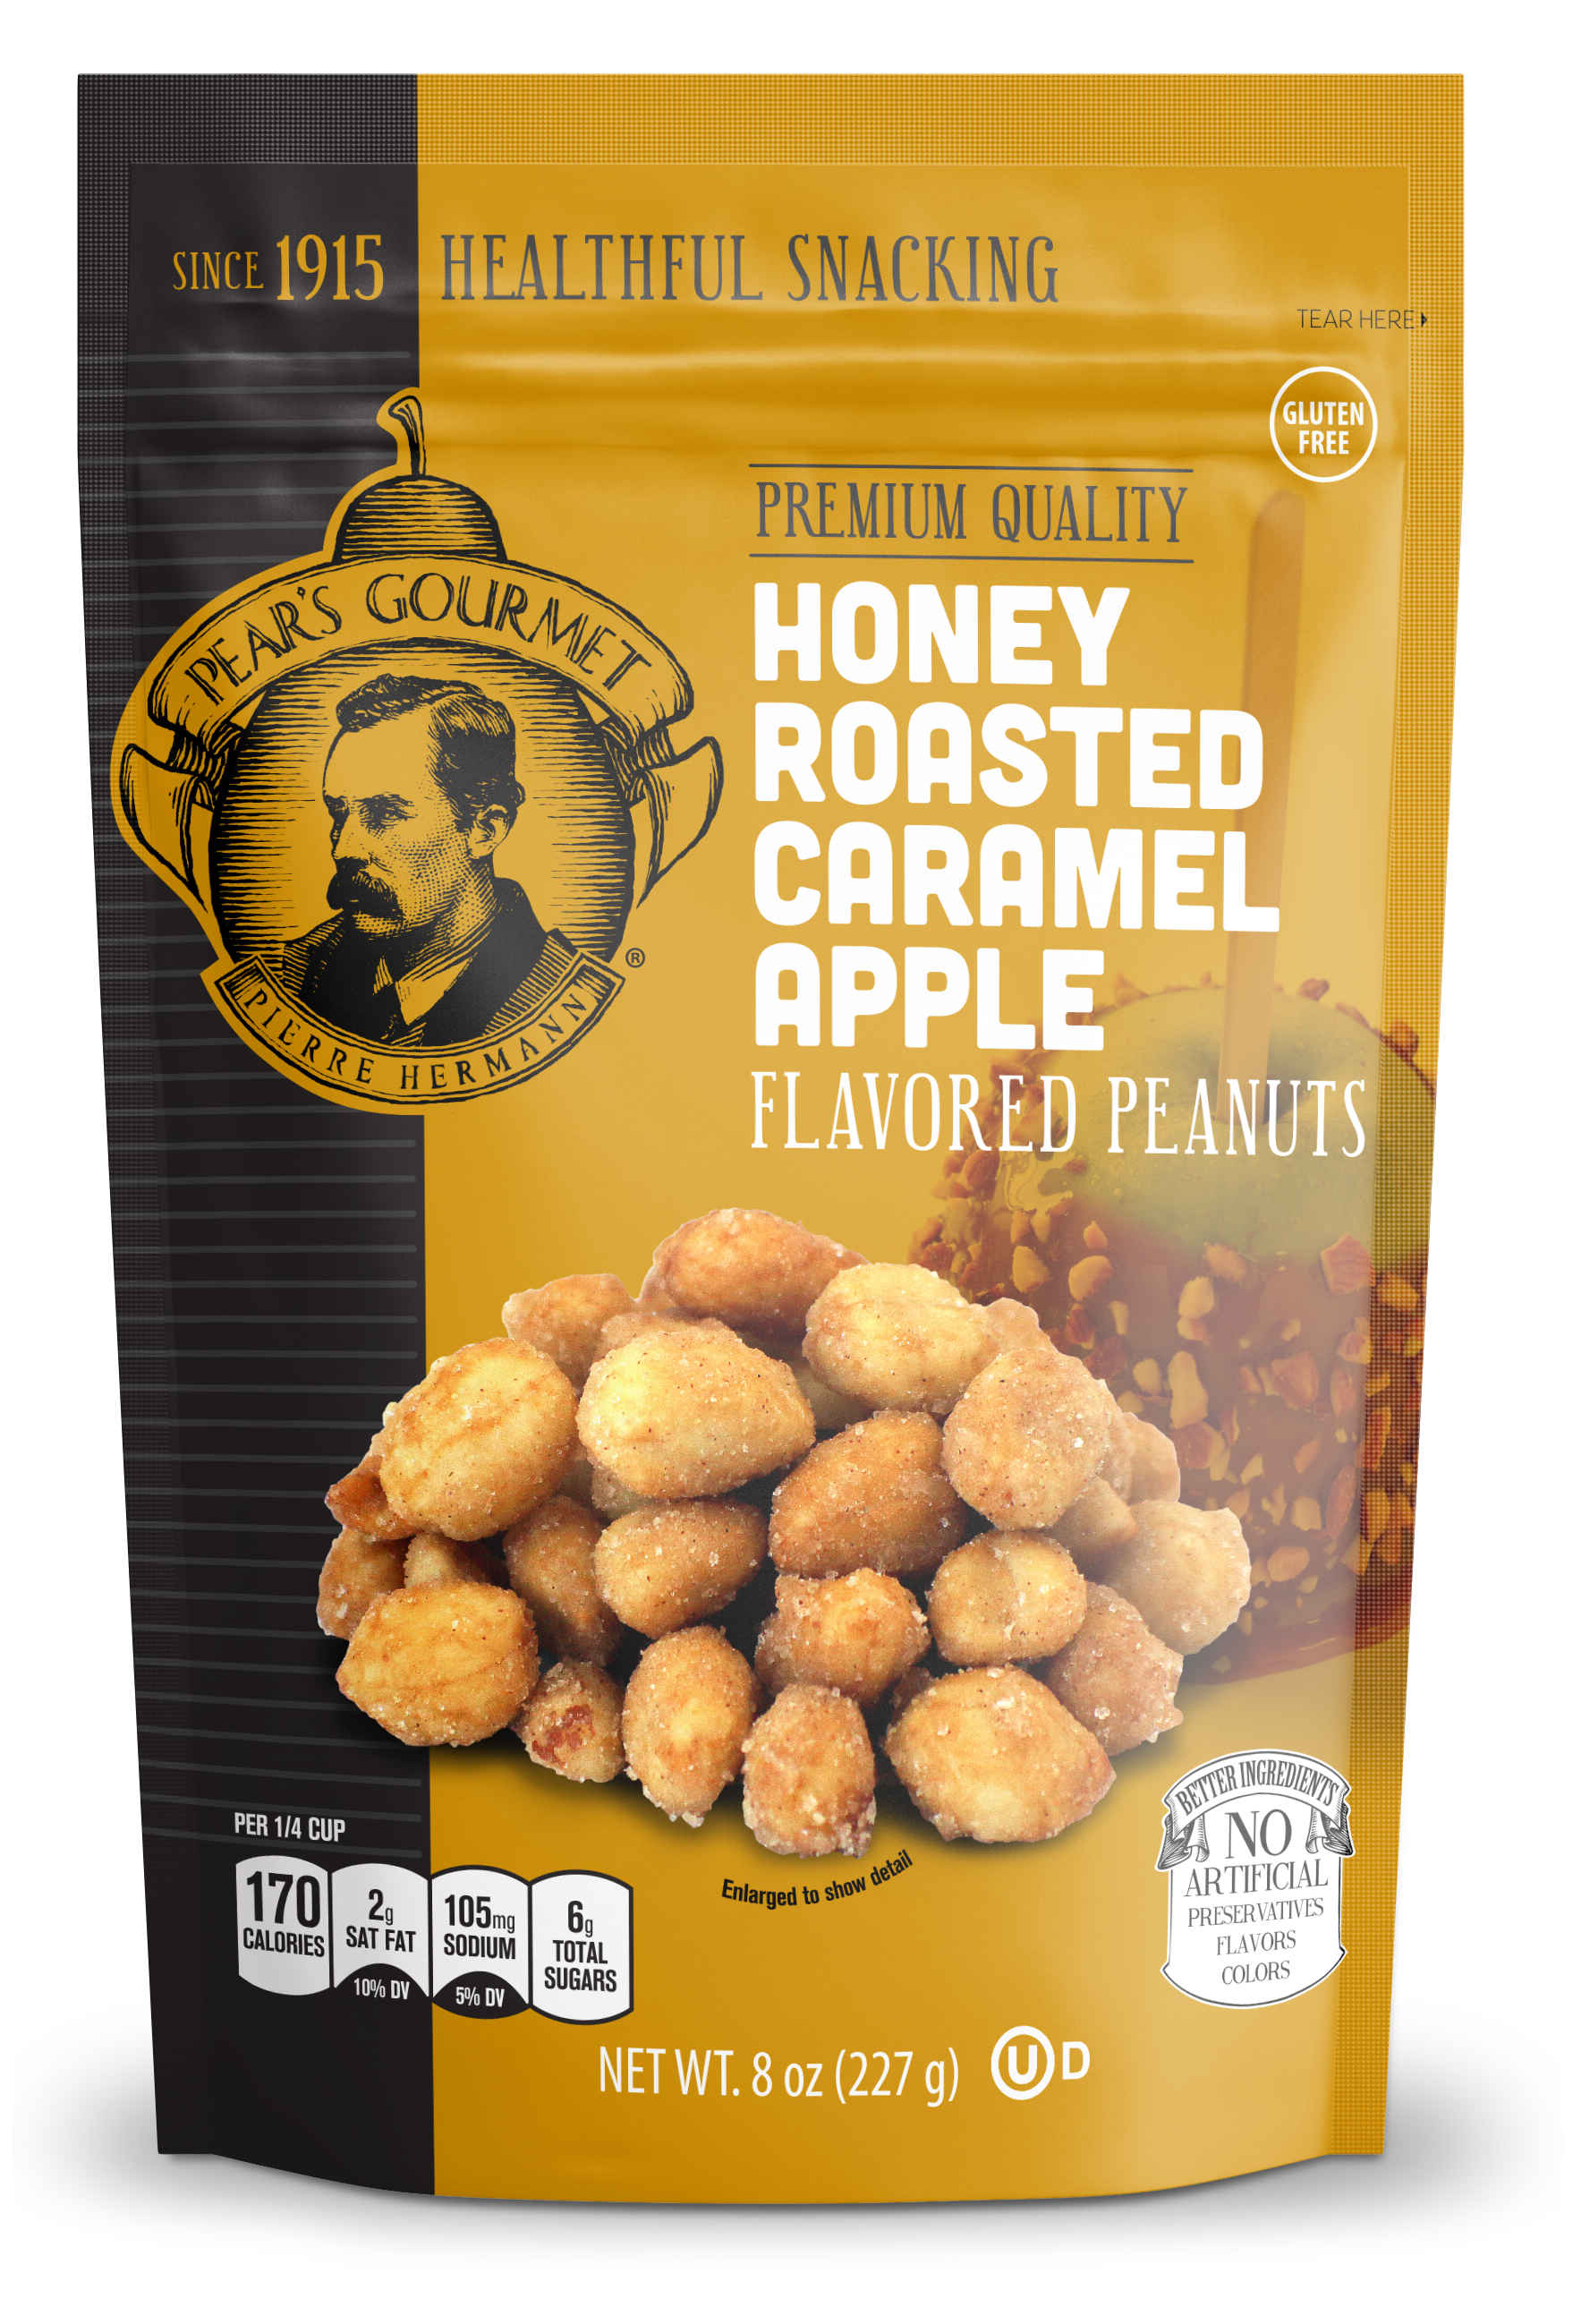 Honey Roasted Caramel Apple Peanuts - 8 oz